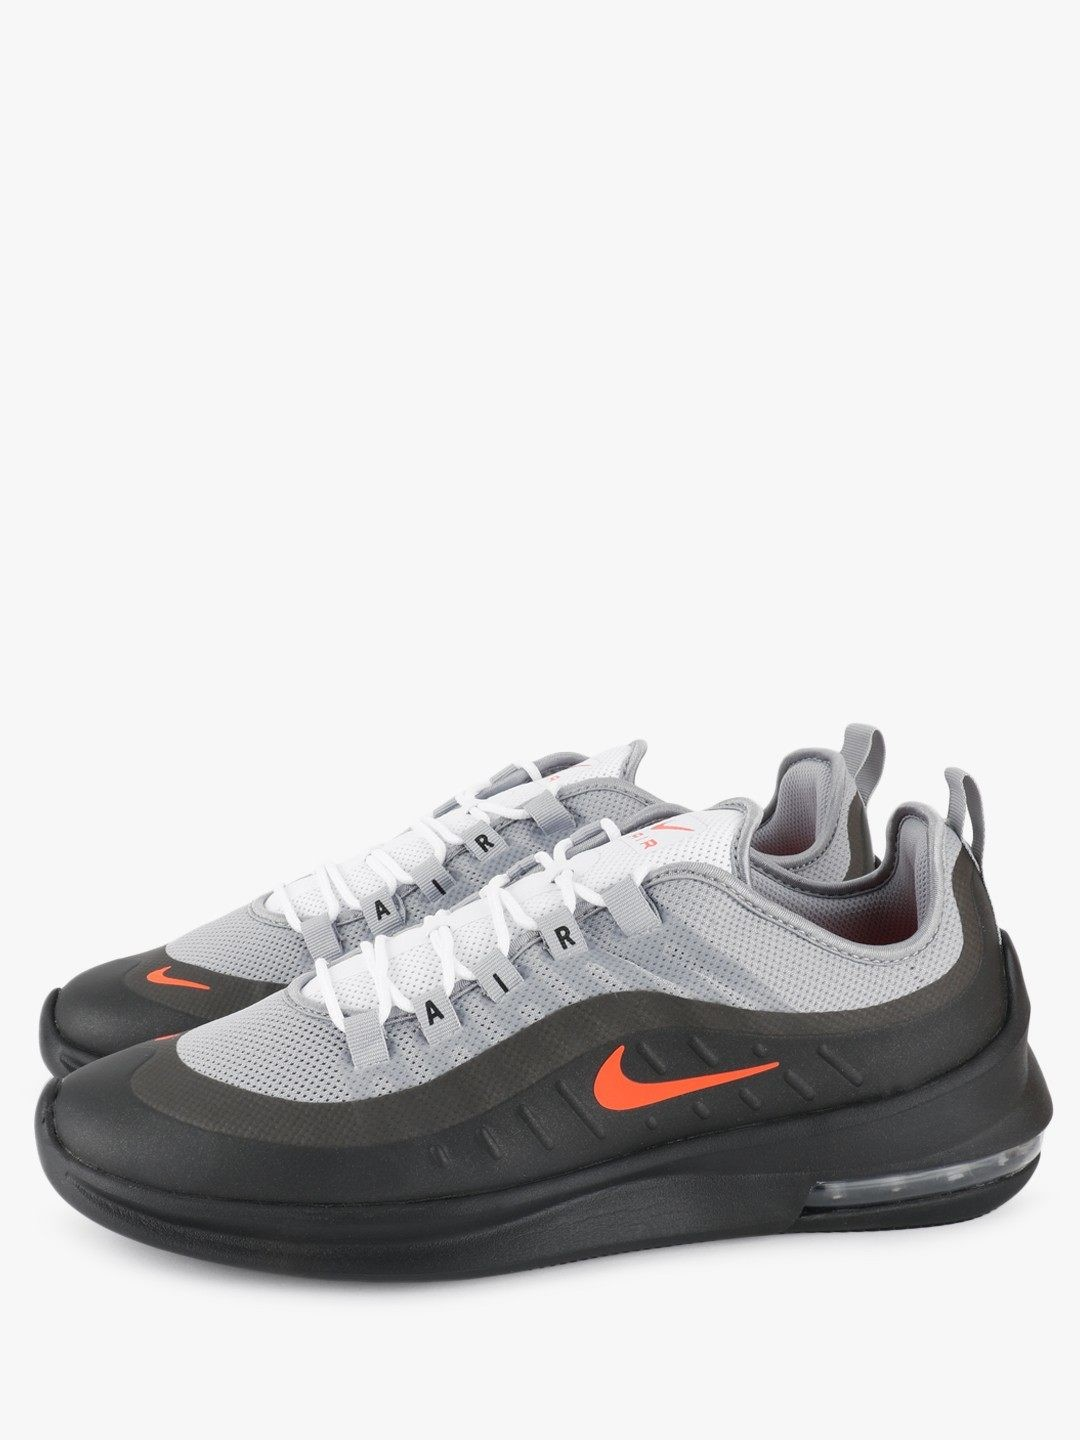 san francisco 901a0 718b1 Buy Nike Grey Air Max Axis Shoes for Men Online in India